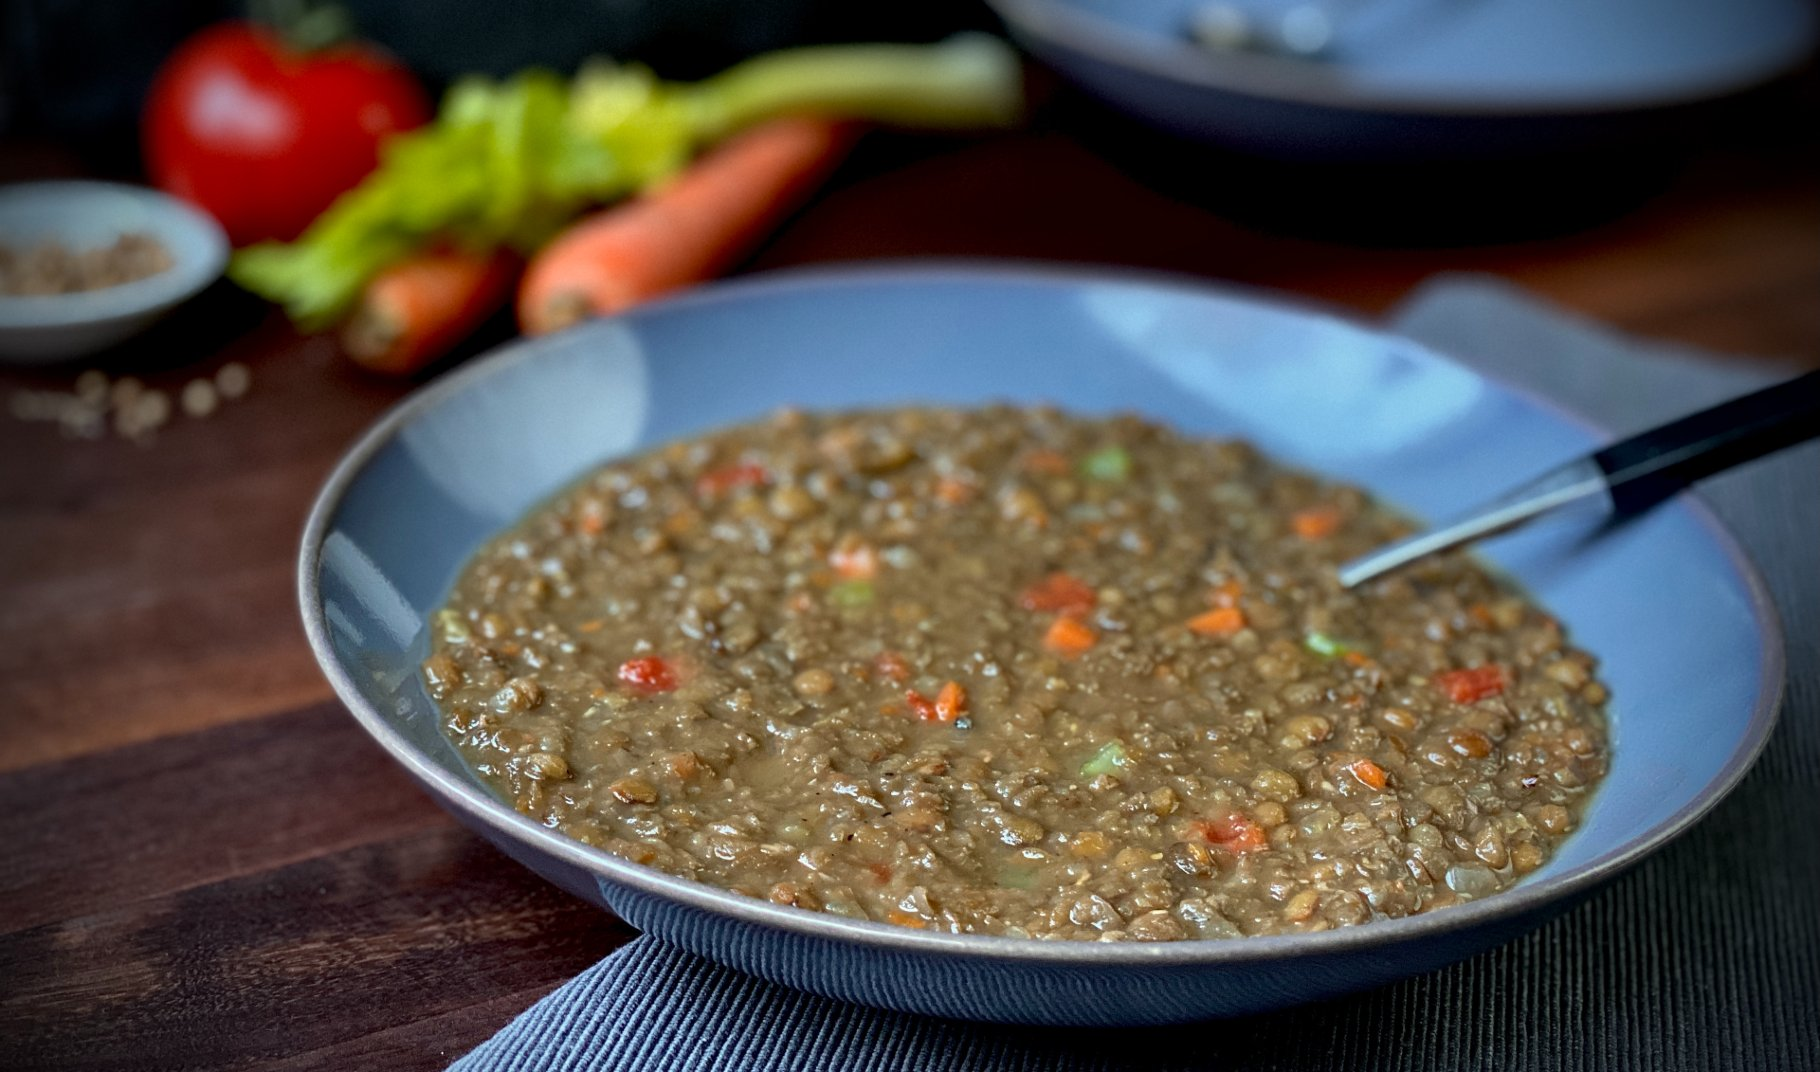 A bowl of lentil soup.